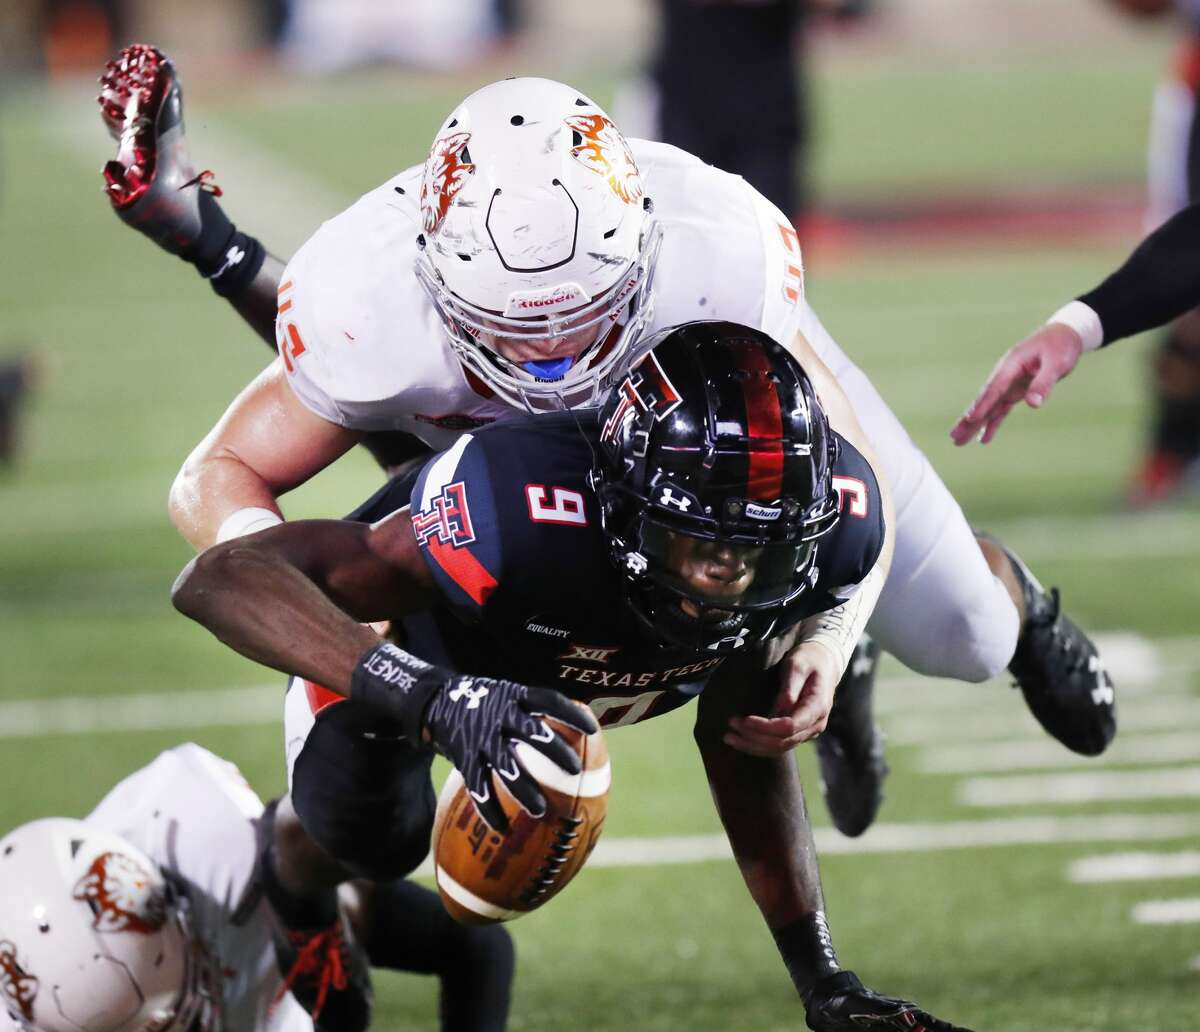 Houston Baptist's Brennan Young, top, tackles Texas Tech's T.J. Vasher (9) on the 1-yard line in the first half of an NCAA college football game, Saturday, Sept. 12, 2020, in Lubbock.